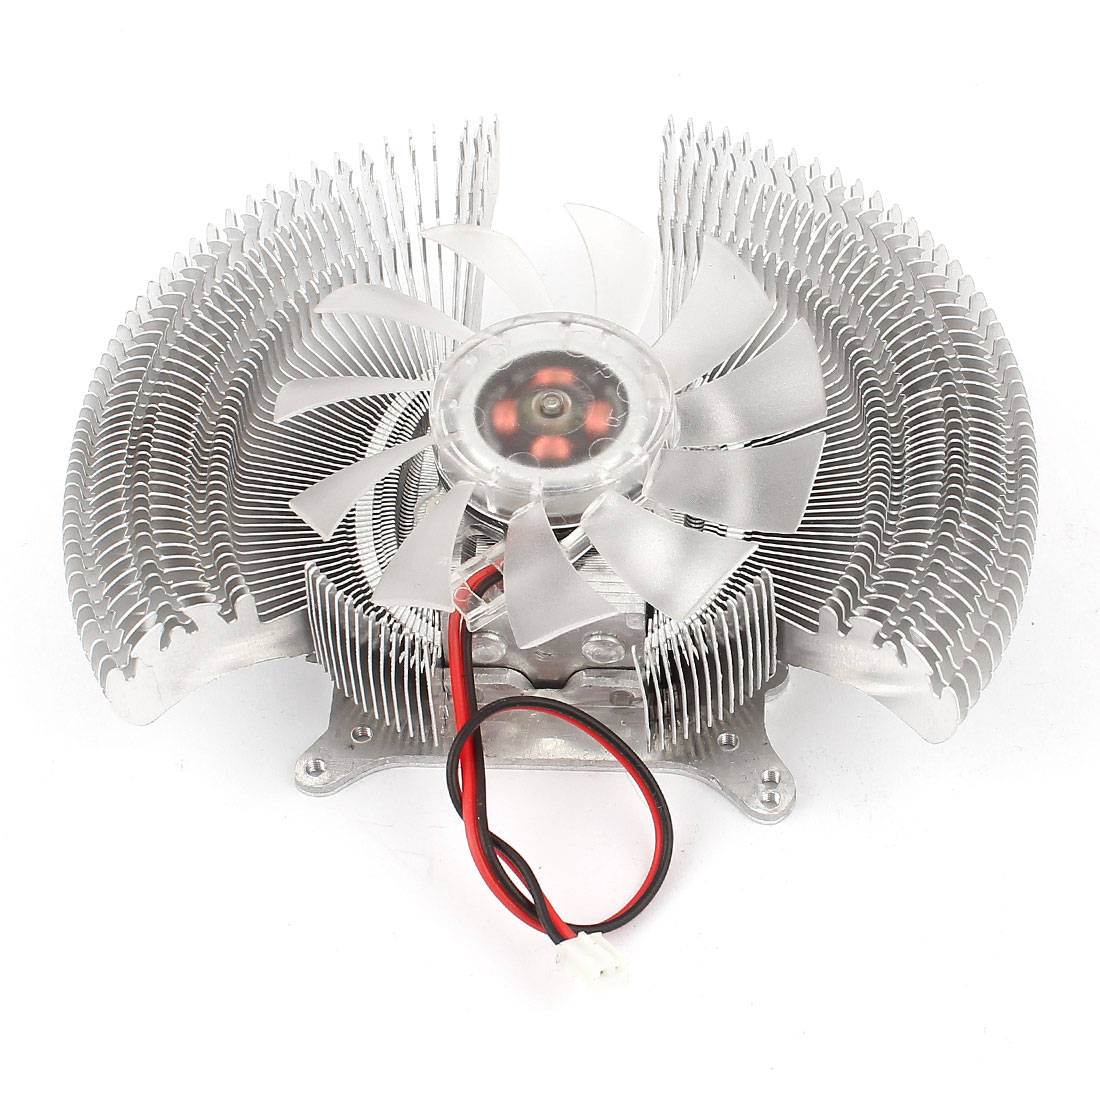 DC 12V 0.18A Ball Bearing VGA Video Card Heatsink Cooler Cooling Fan